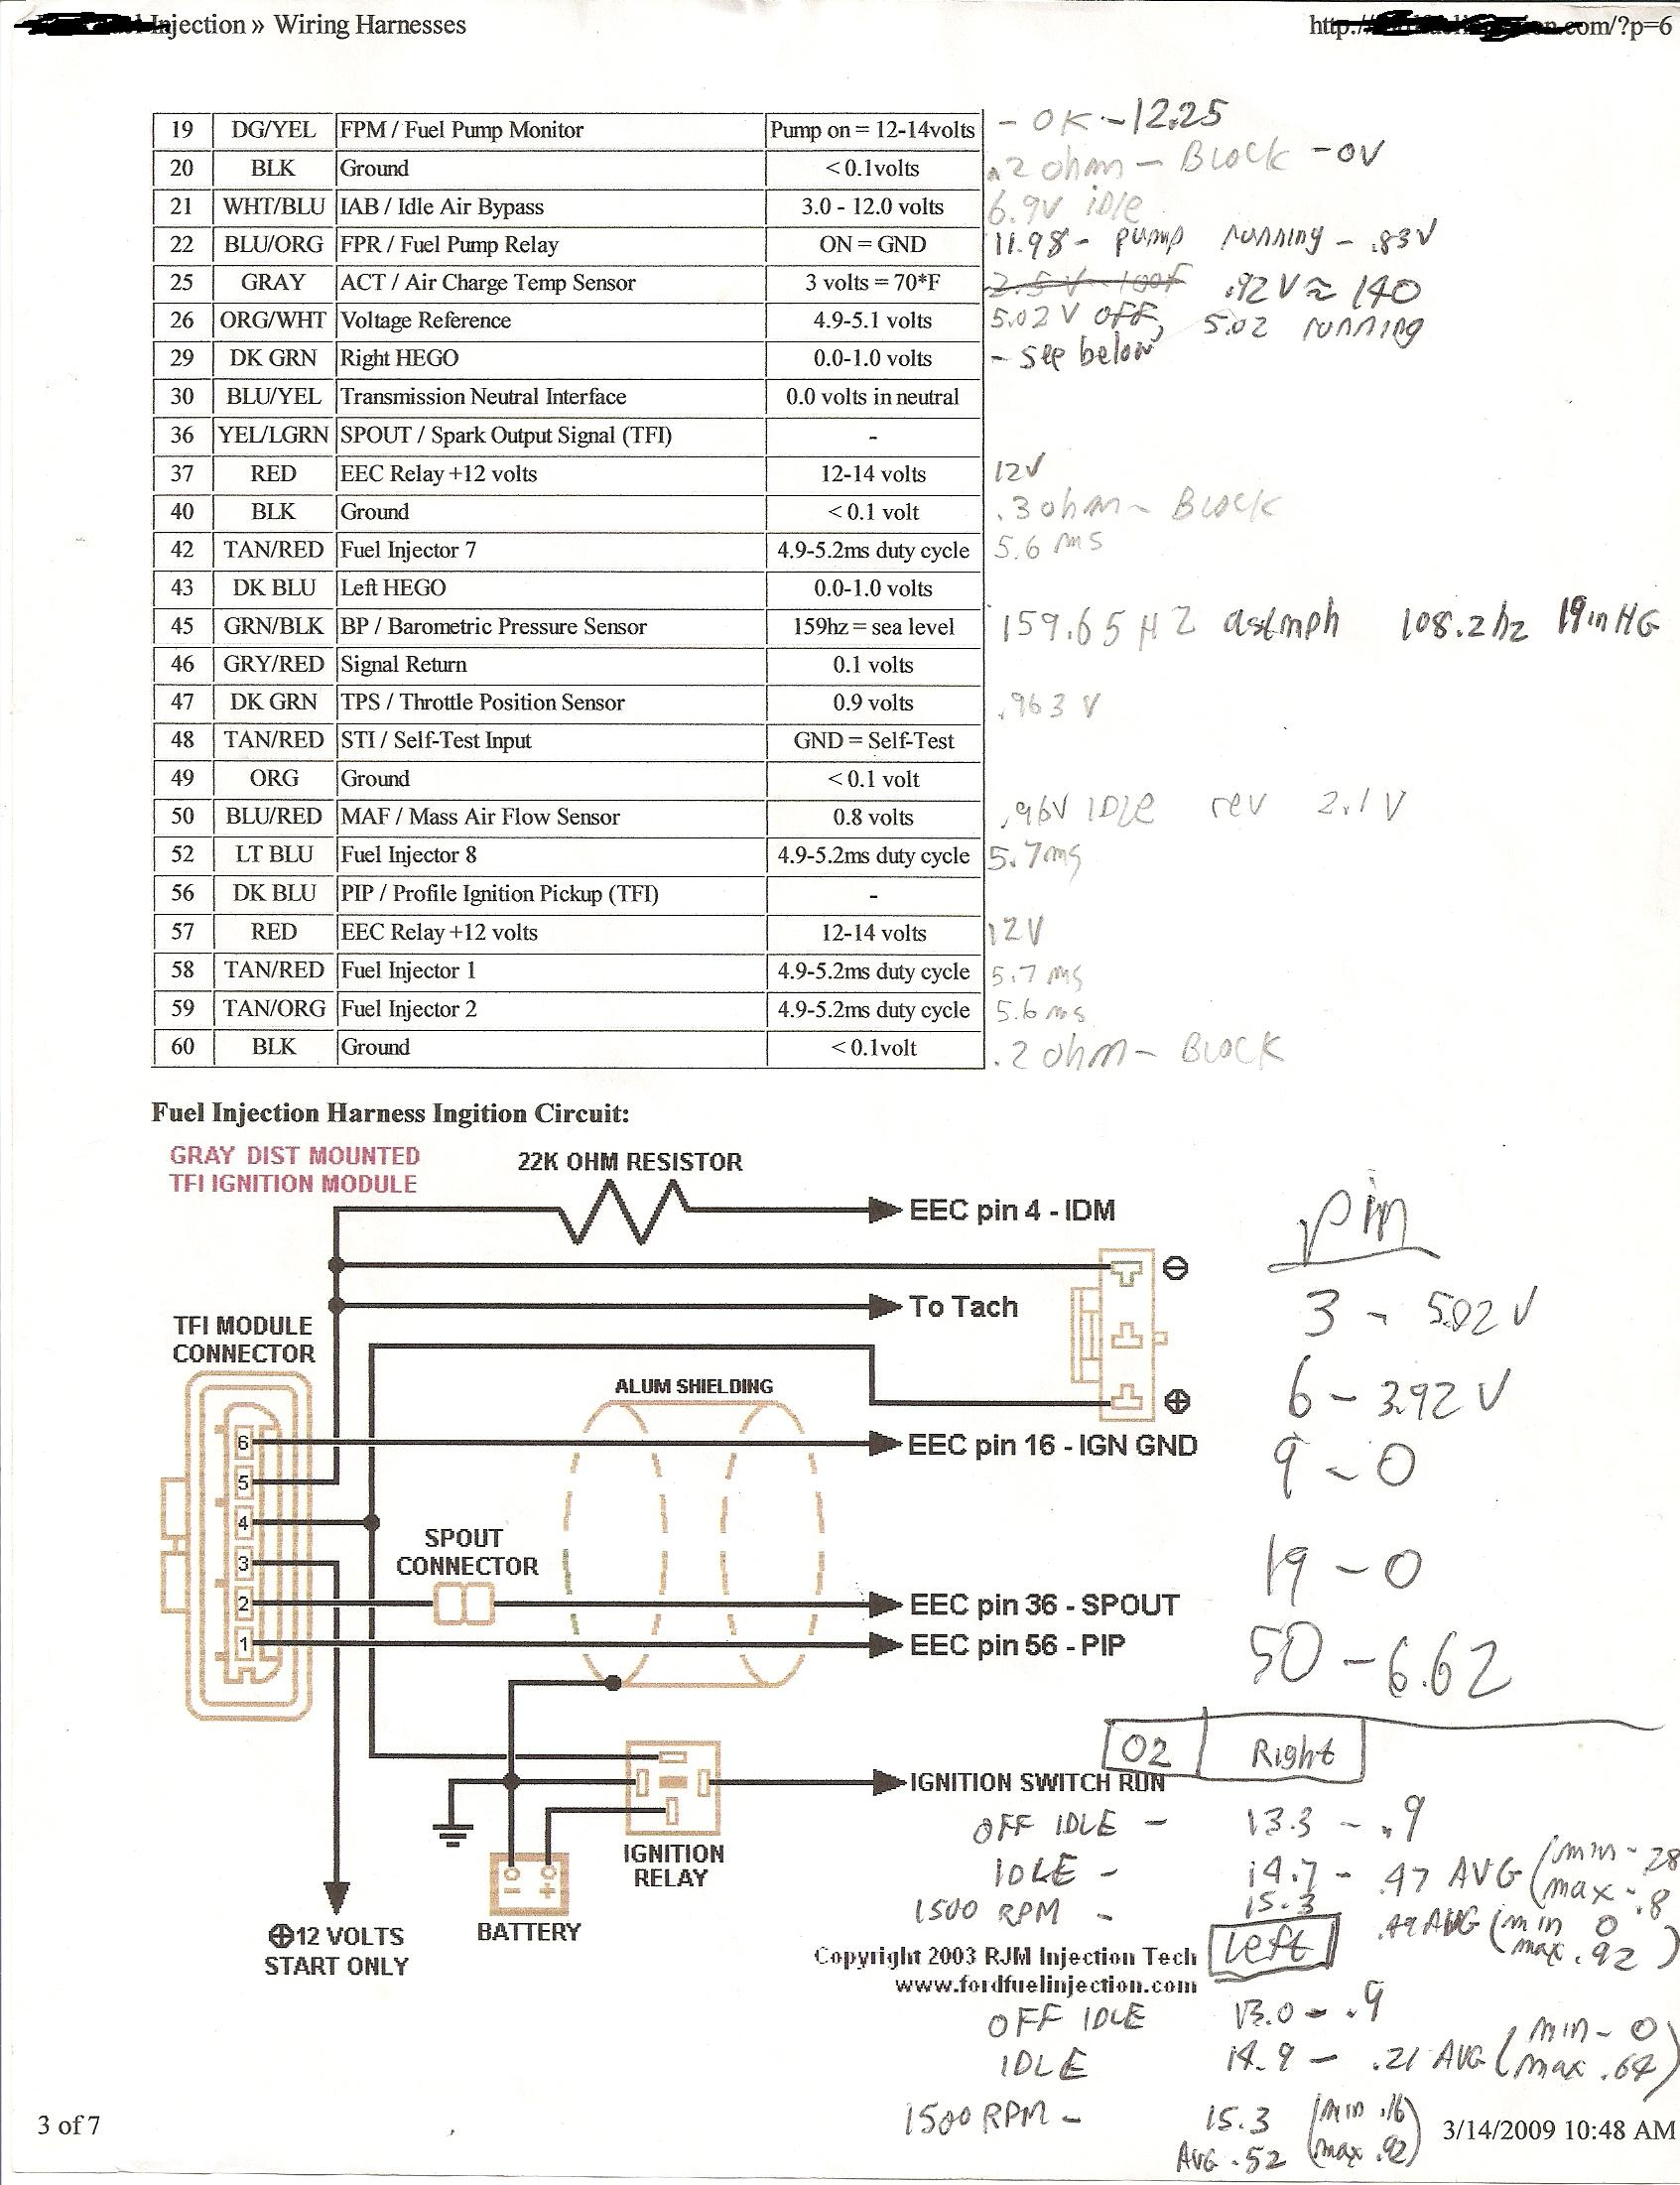 Efi Computer Pin Out Diagram Forums 5 0 Fuel Injection Wiring Harness So Ignore Diagrams Unless You Want To Emulate What A Good Non Emission Re Work Might Be For Your Minus Mass Air Conversion Of Course